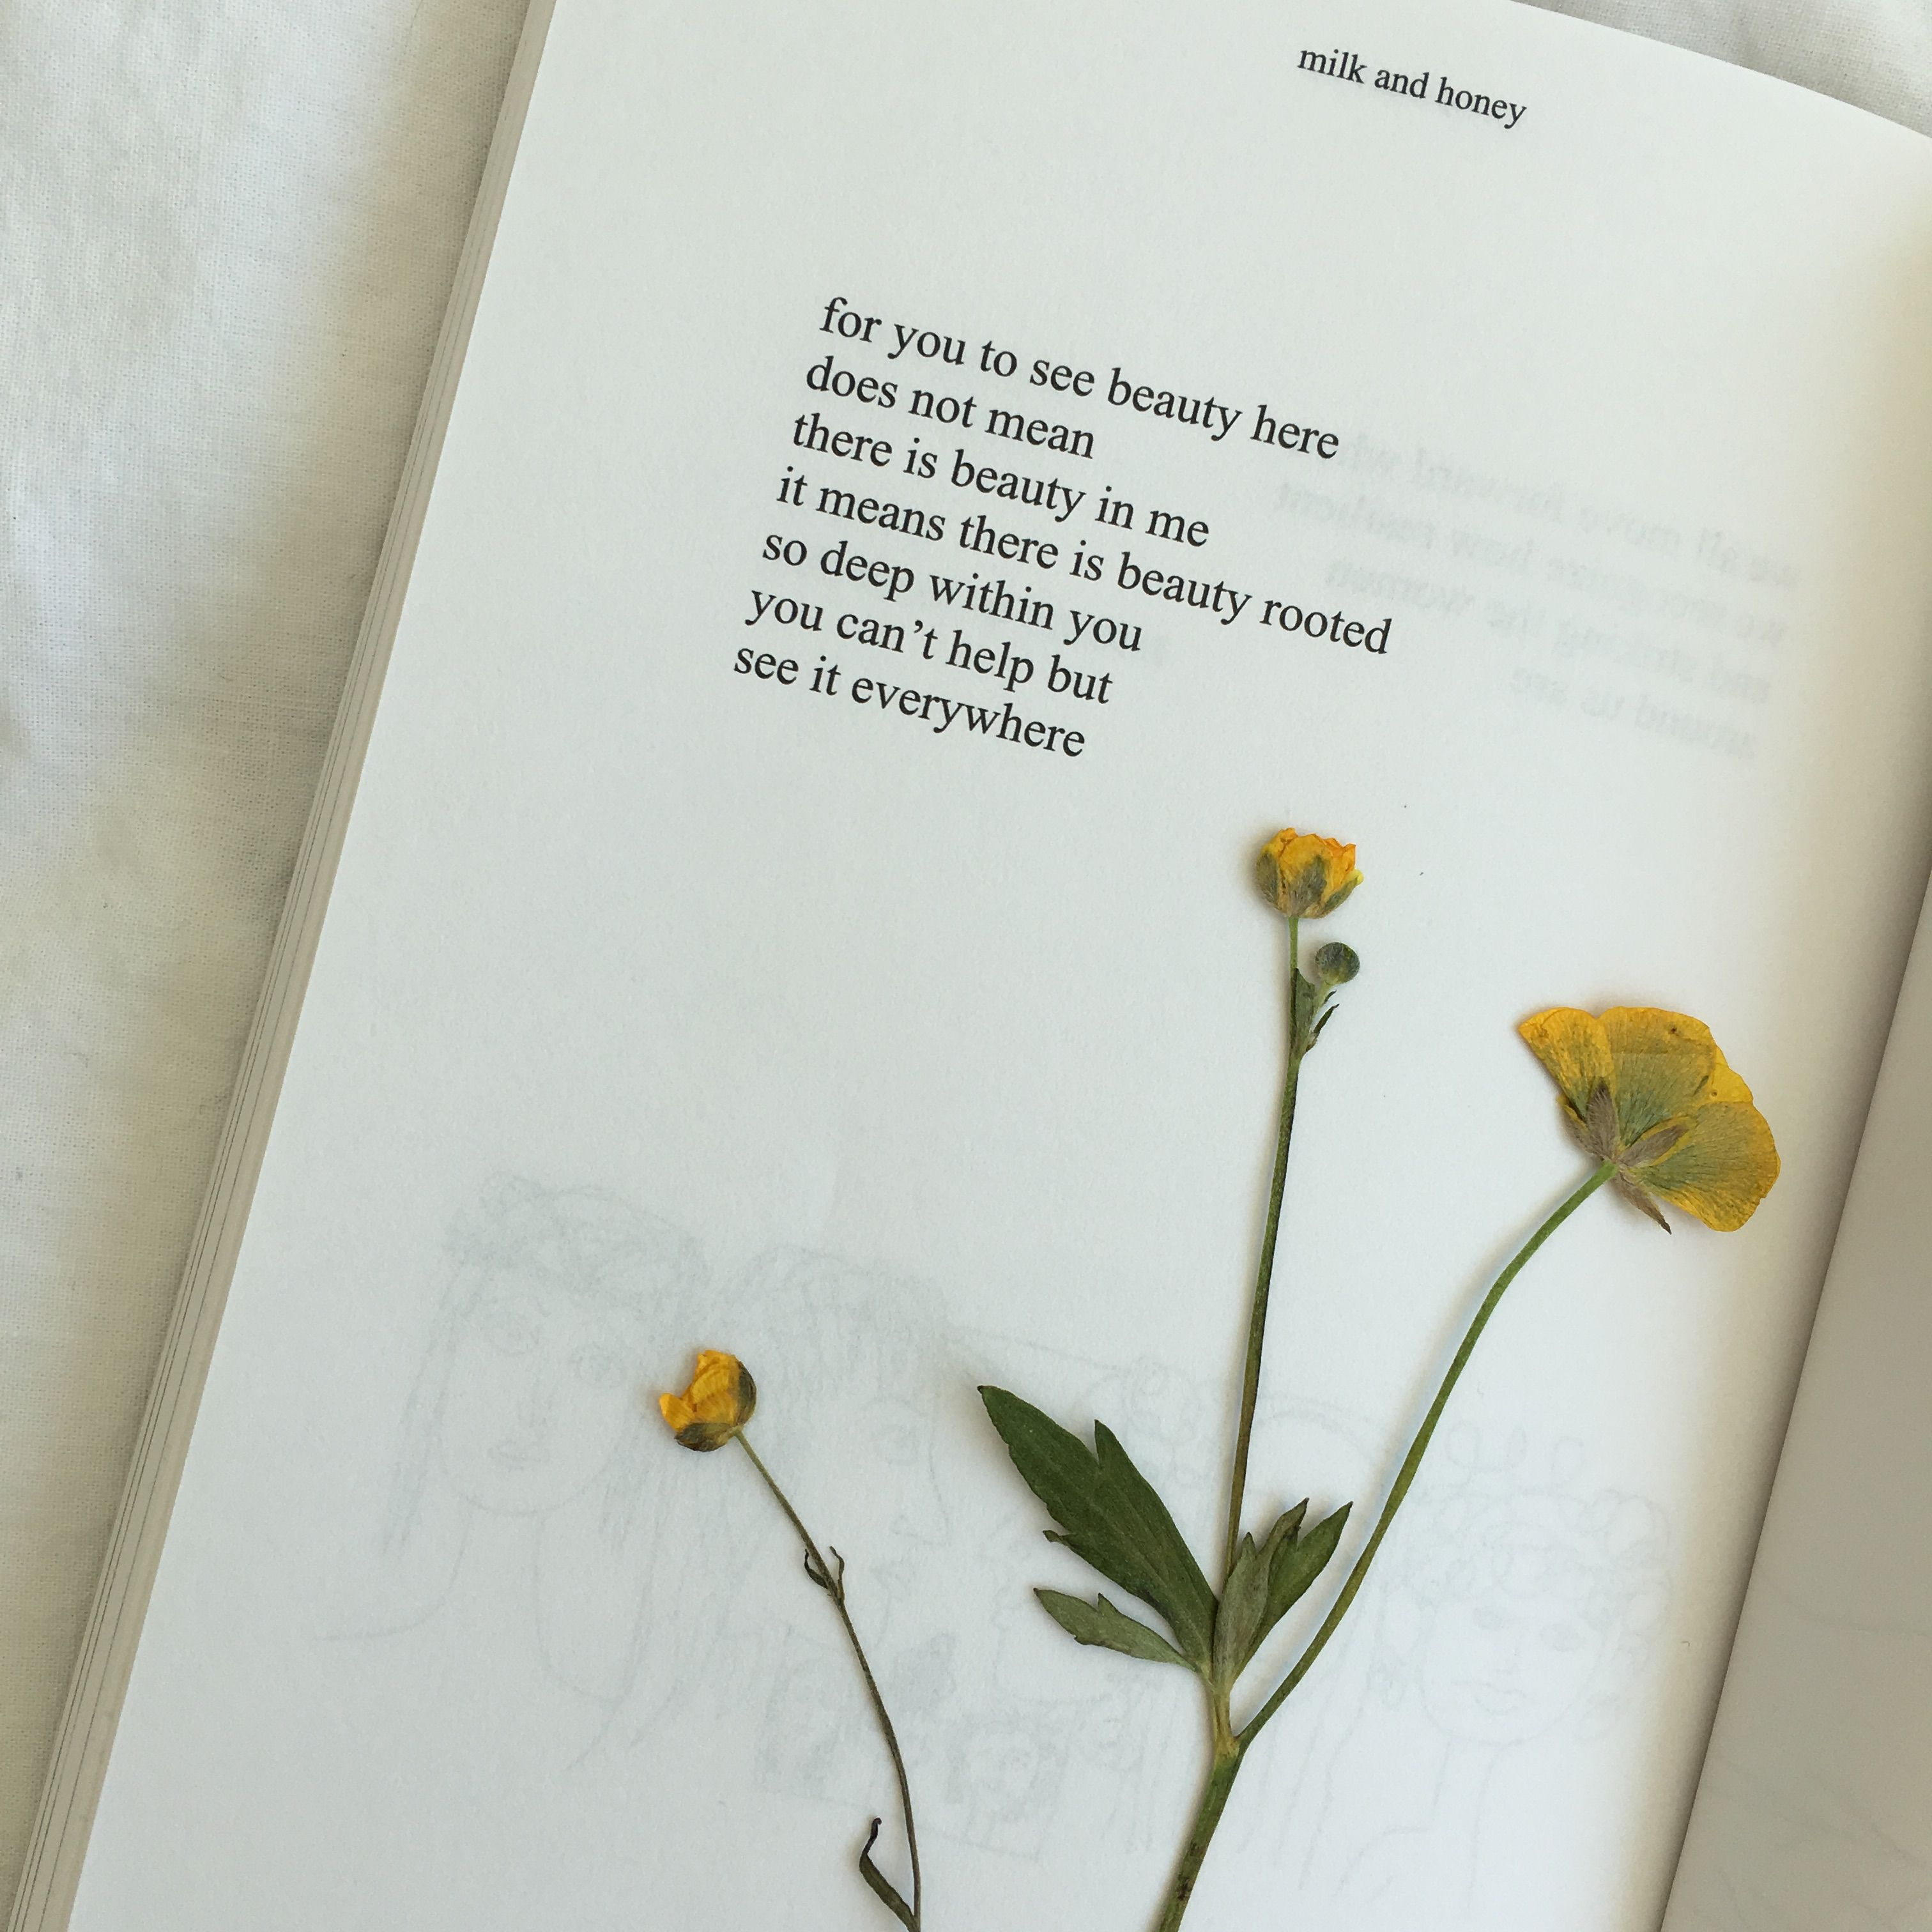 Milk And Honey By Rupi Kaur Food For Thought Pinterest Rupi